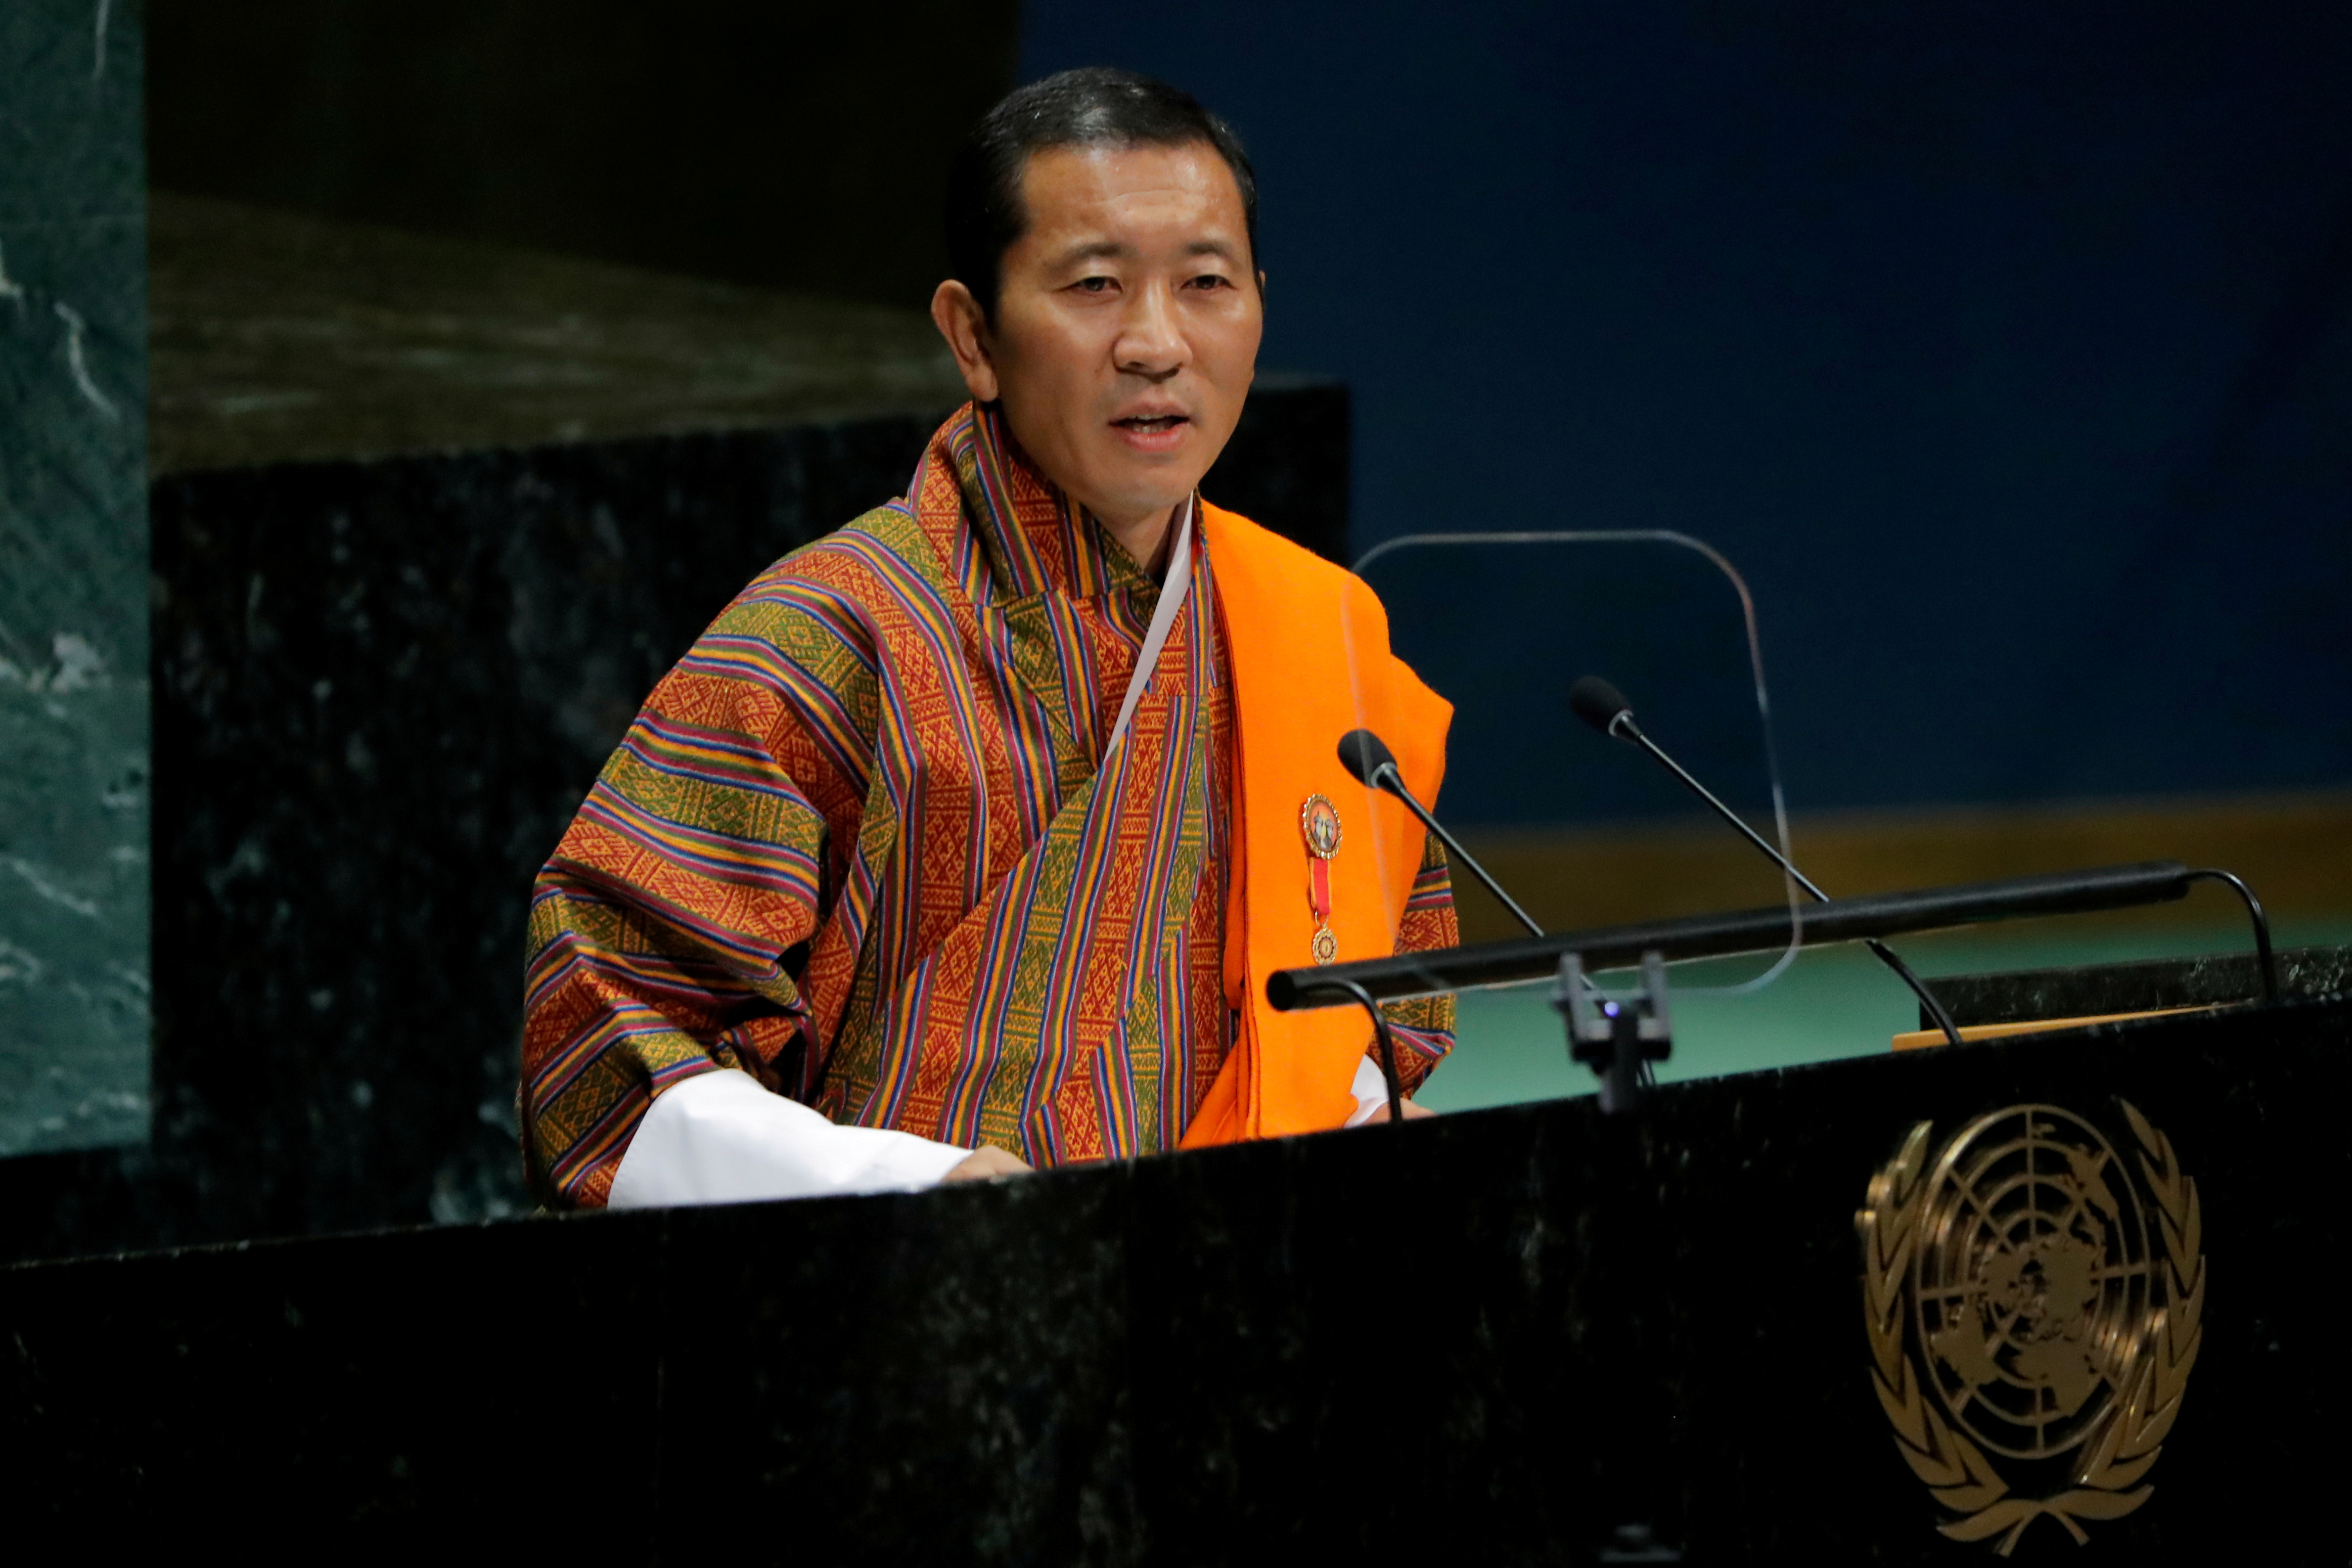 Bhutan's Prime Minister Lotay Tshering addresses the 74th session of the United Nations General Assembly at U.N. headquarters in New York City, New York, U.S., September 28, 2019.  REUTERS/Brendan McDermid